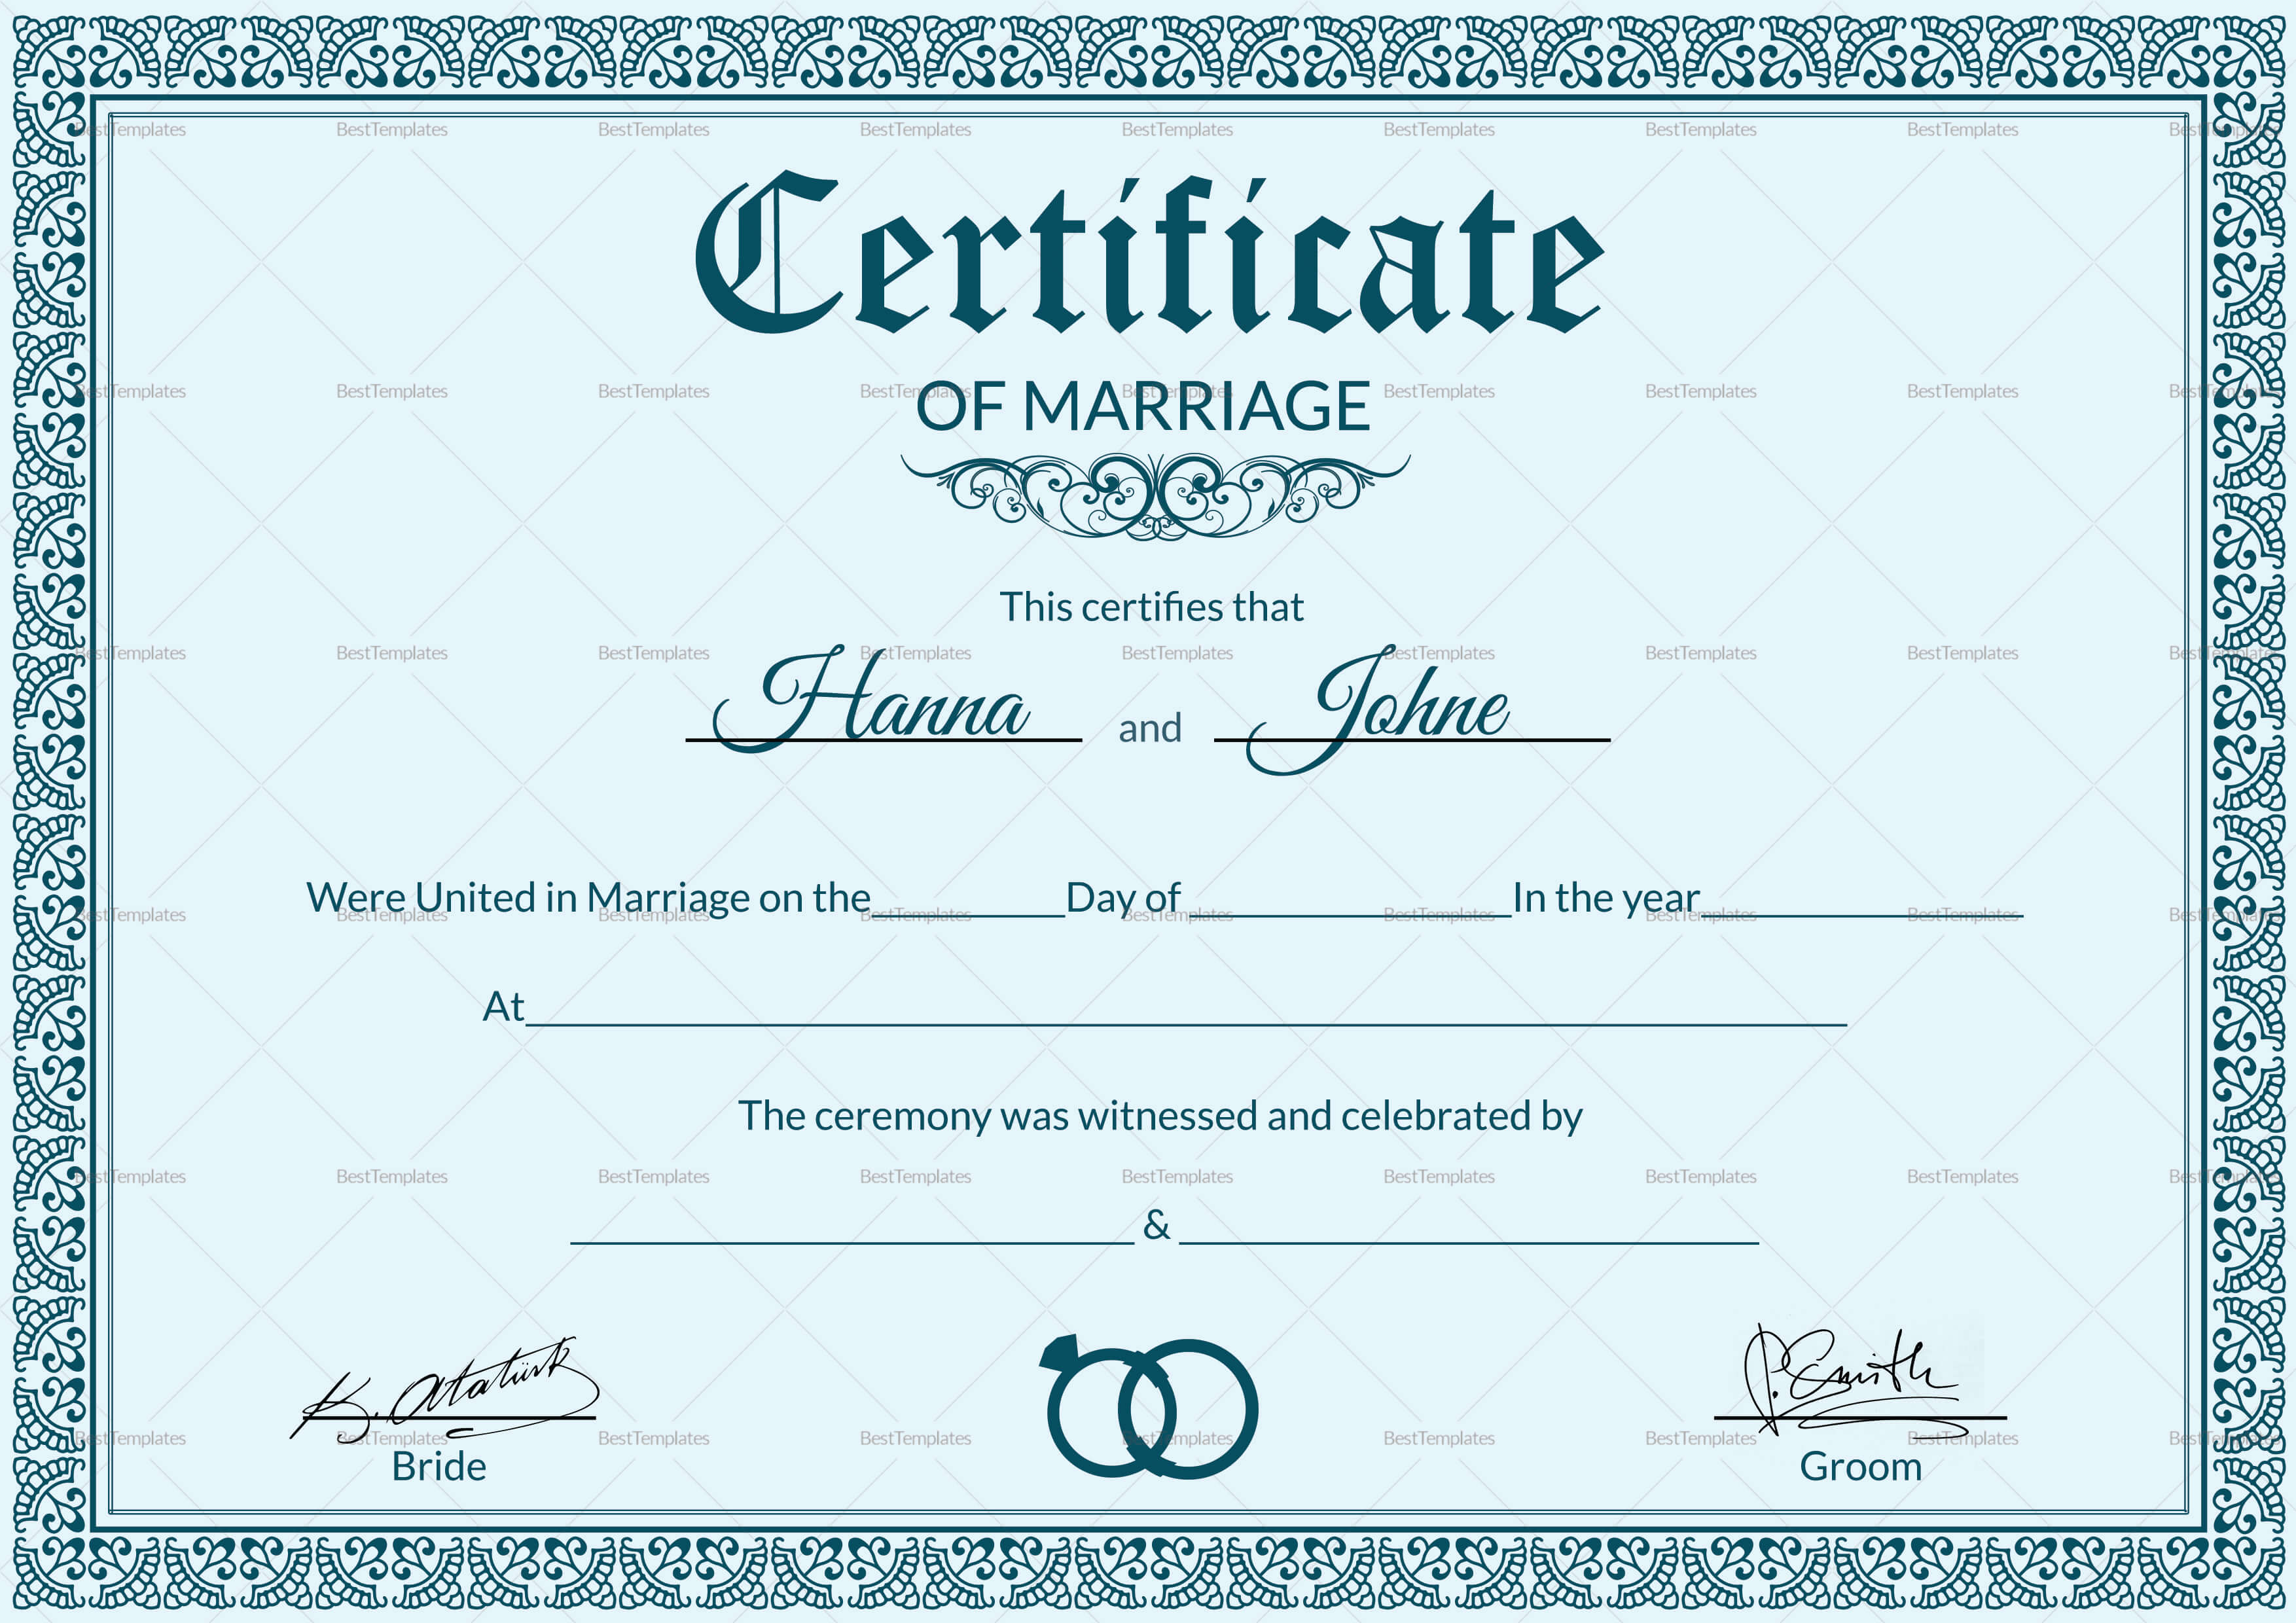 005 Marriage Certificate Template28129 Of Template Beautiful inside Certificate Of Marriage Template